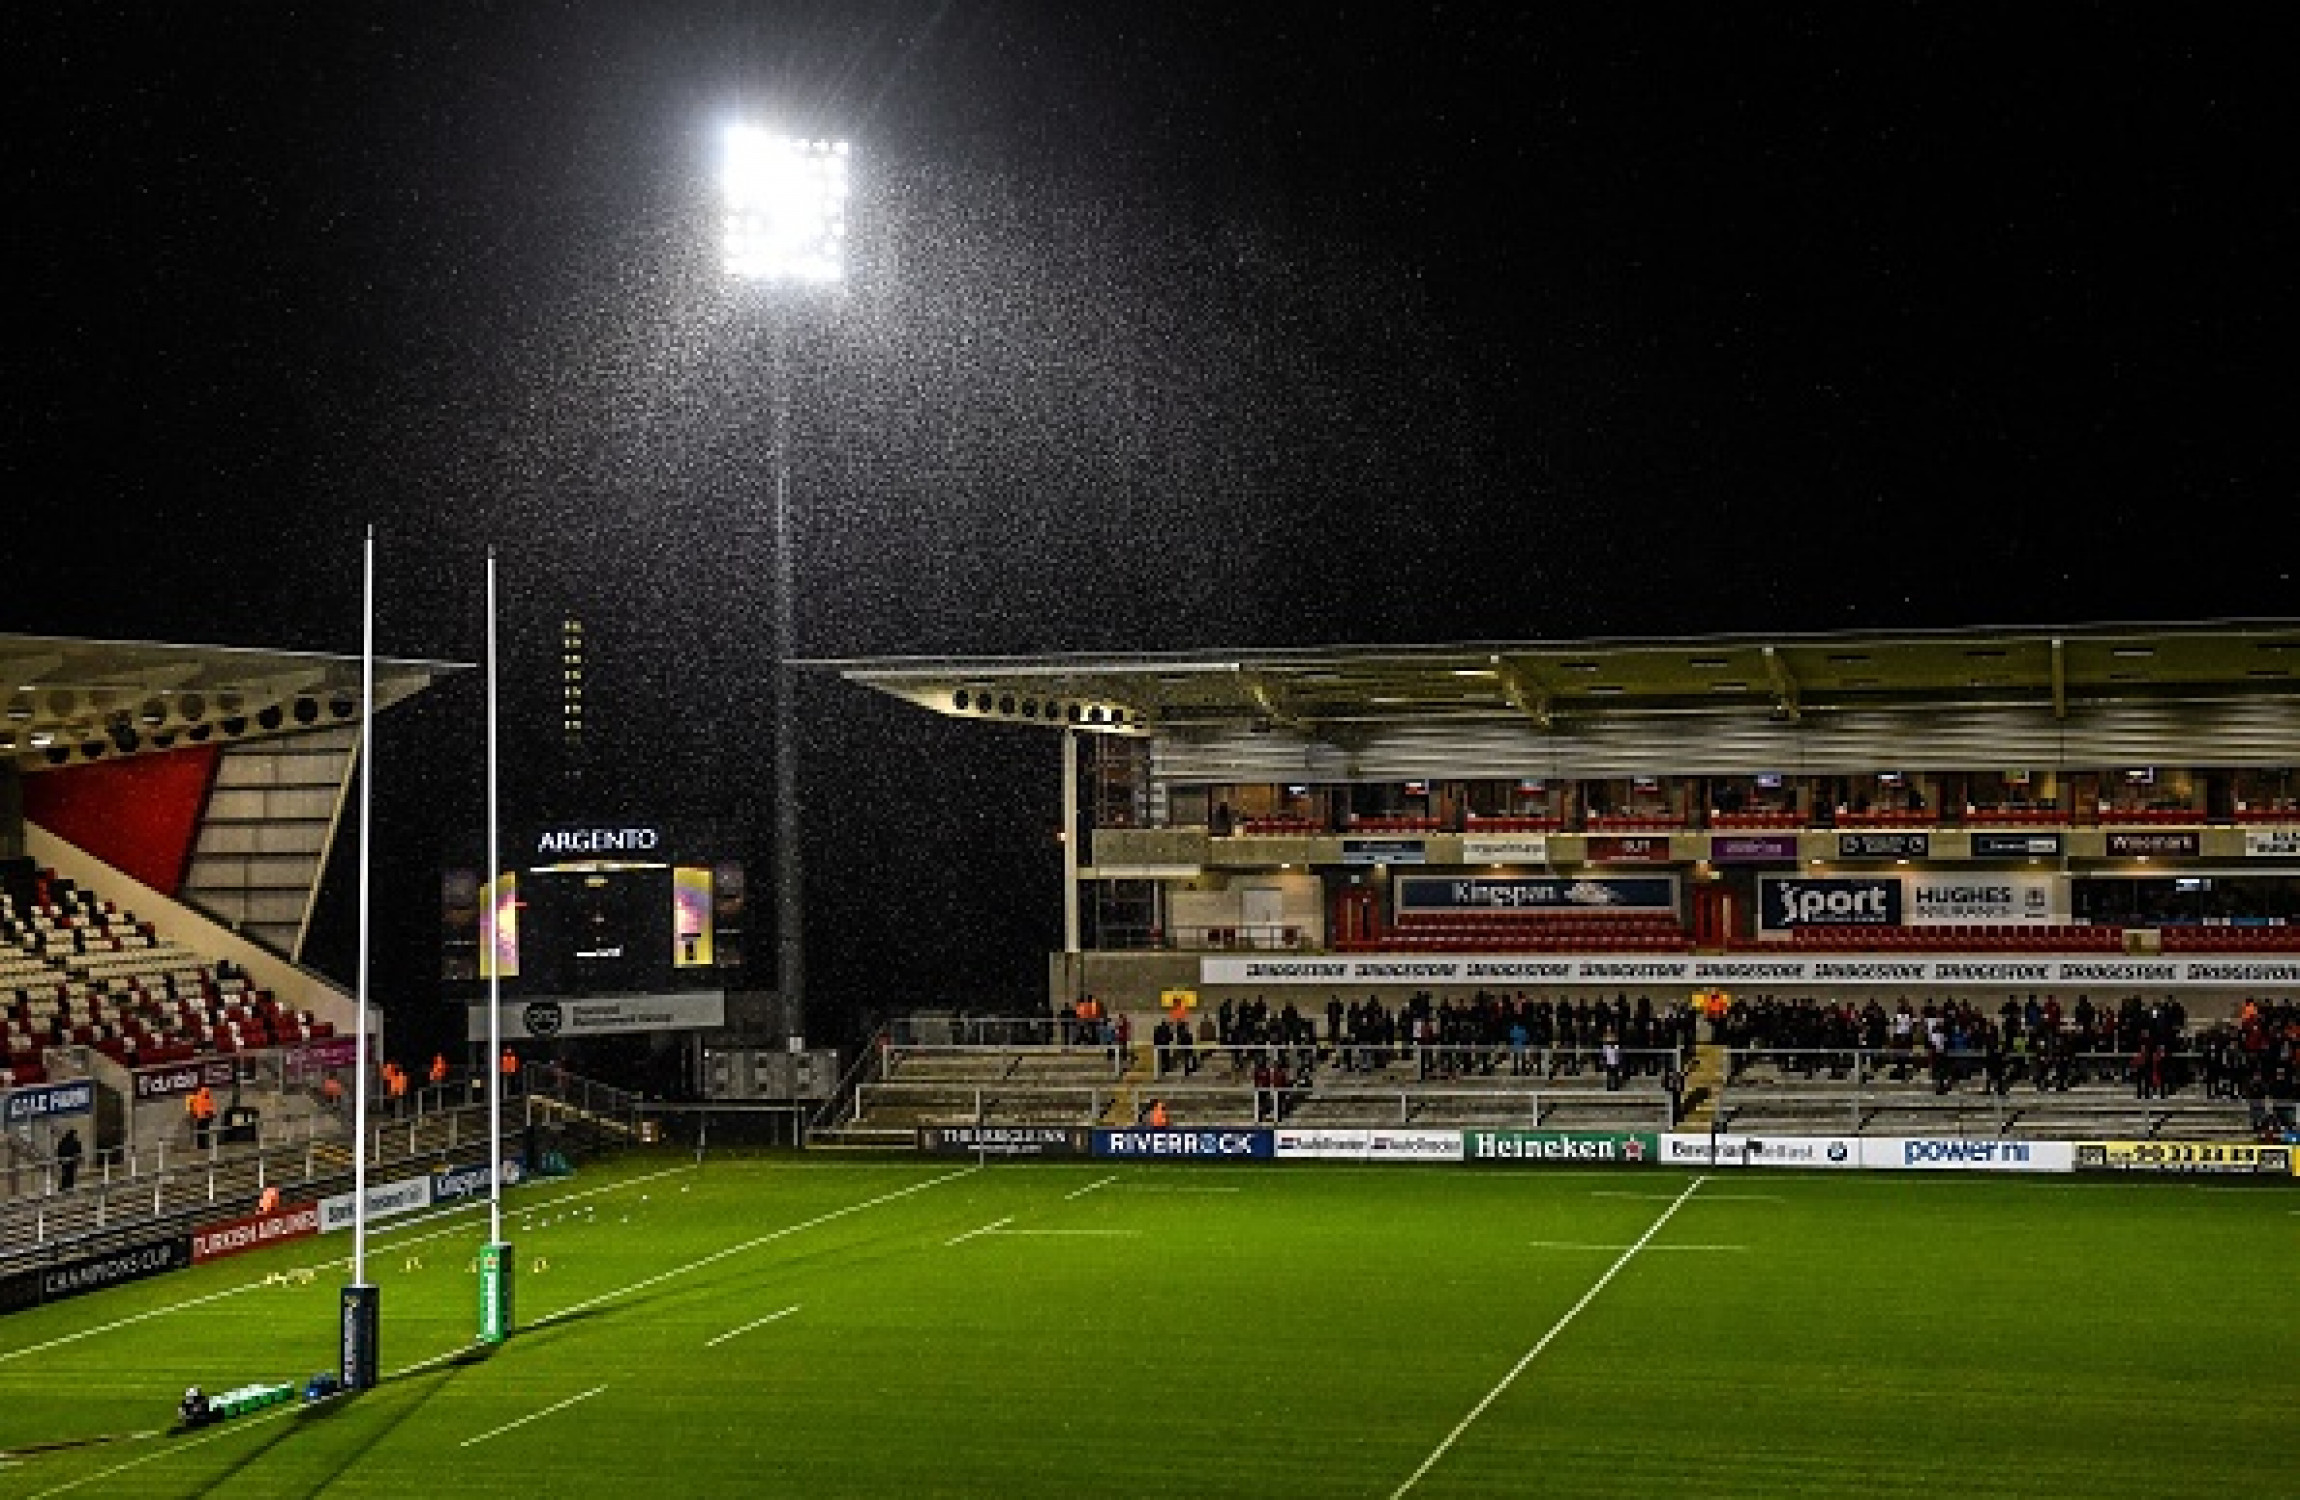 Pro14: Edinburgh v Munster is called off due to adverse weather